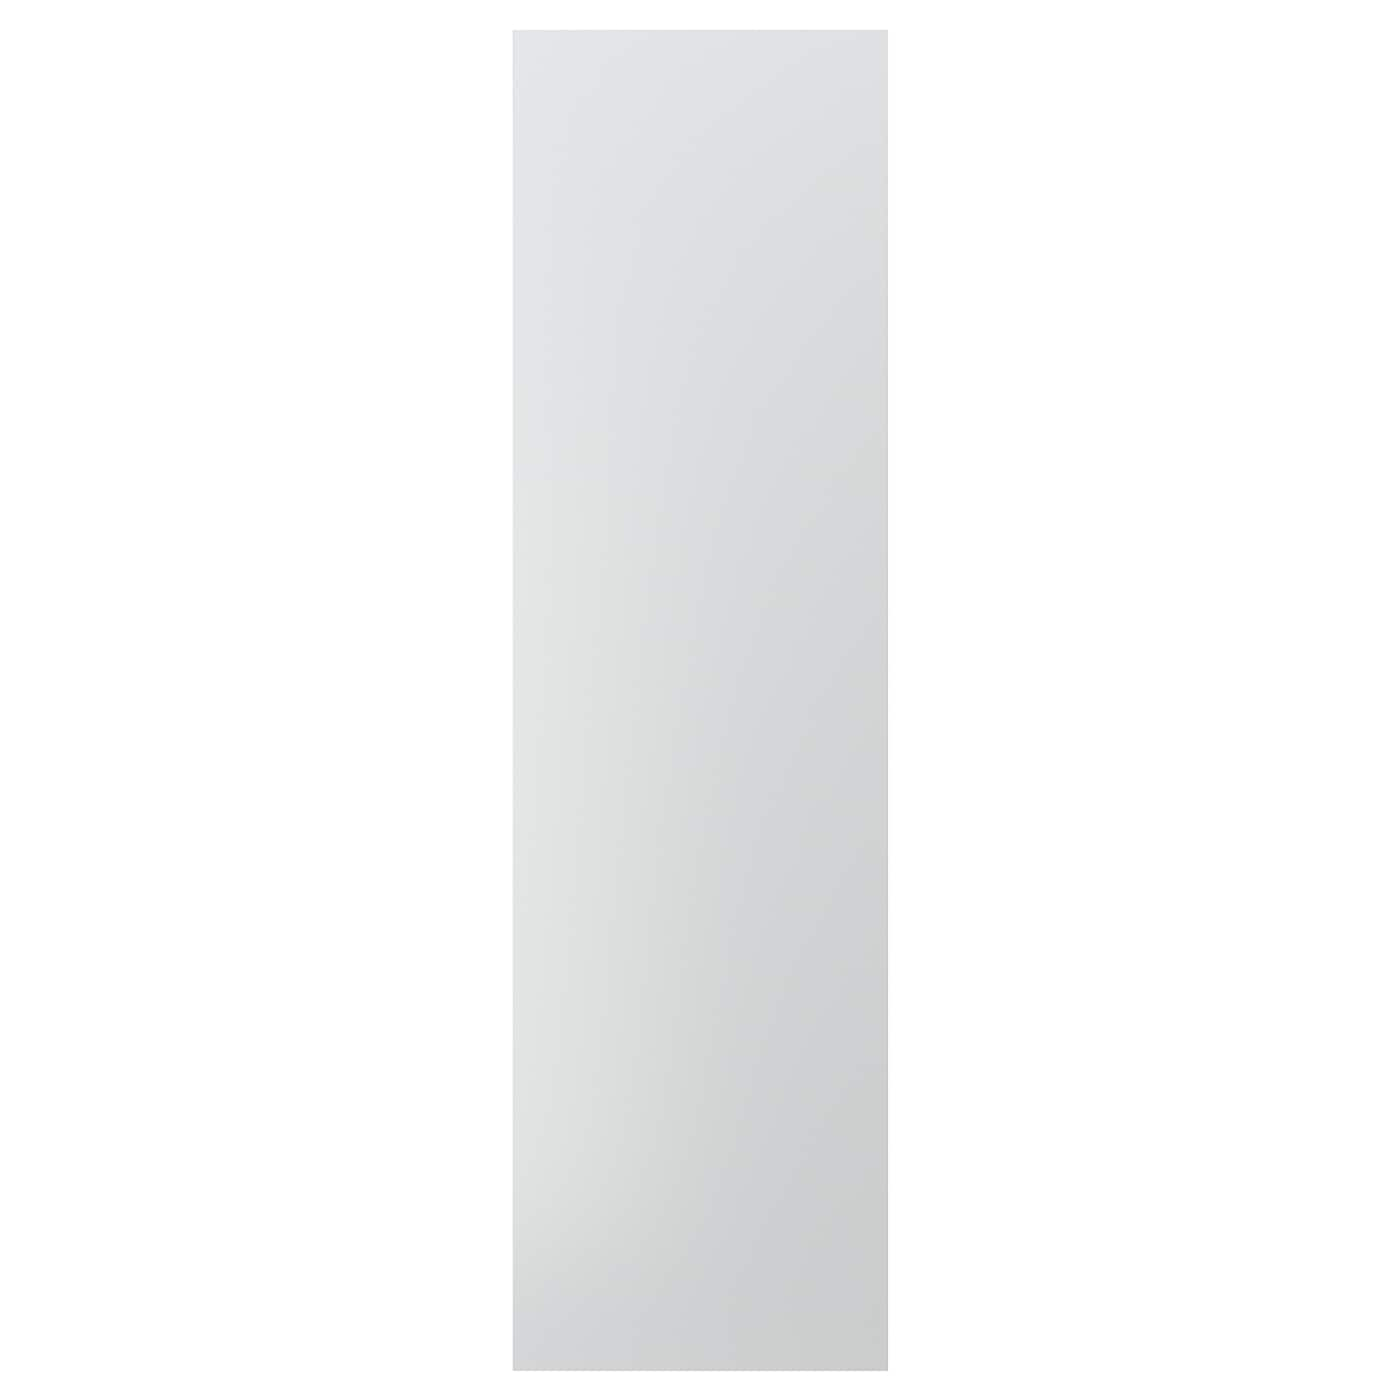 IKEA VEDDINGE cover panel 25 year guarantee. Read about the terms in the guarantee brochure.